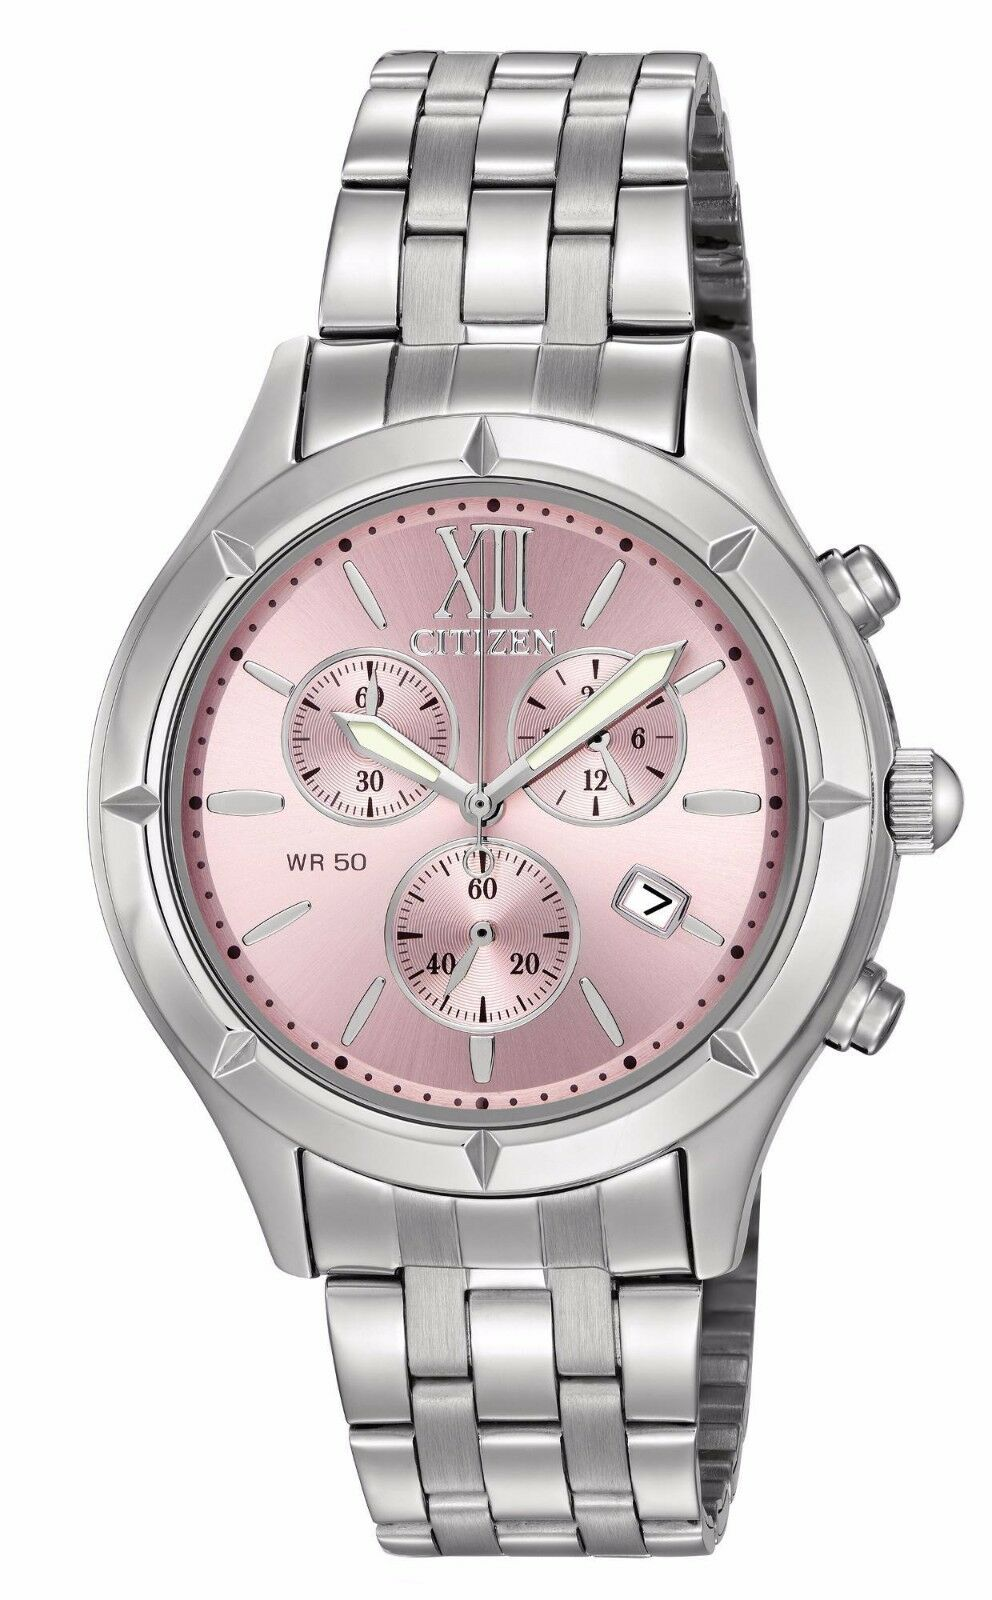 $64.79 - Citizen FA0020-54X Women's Stainless Steel Pink Dial Chronograph Watch